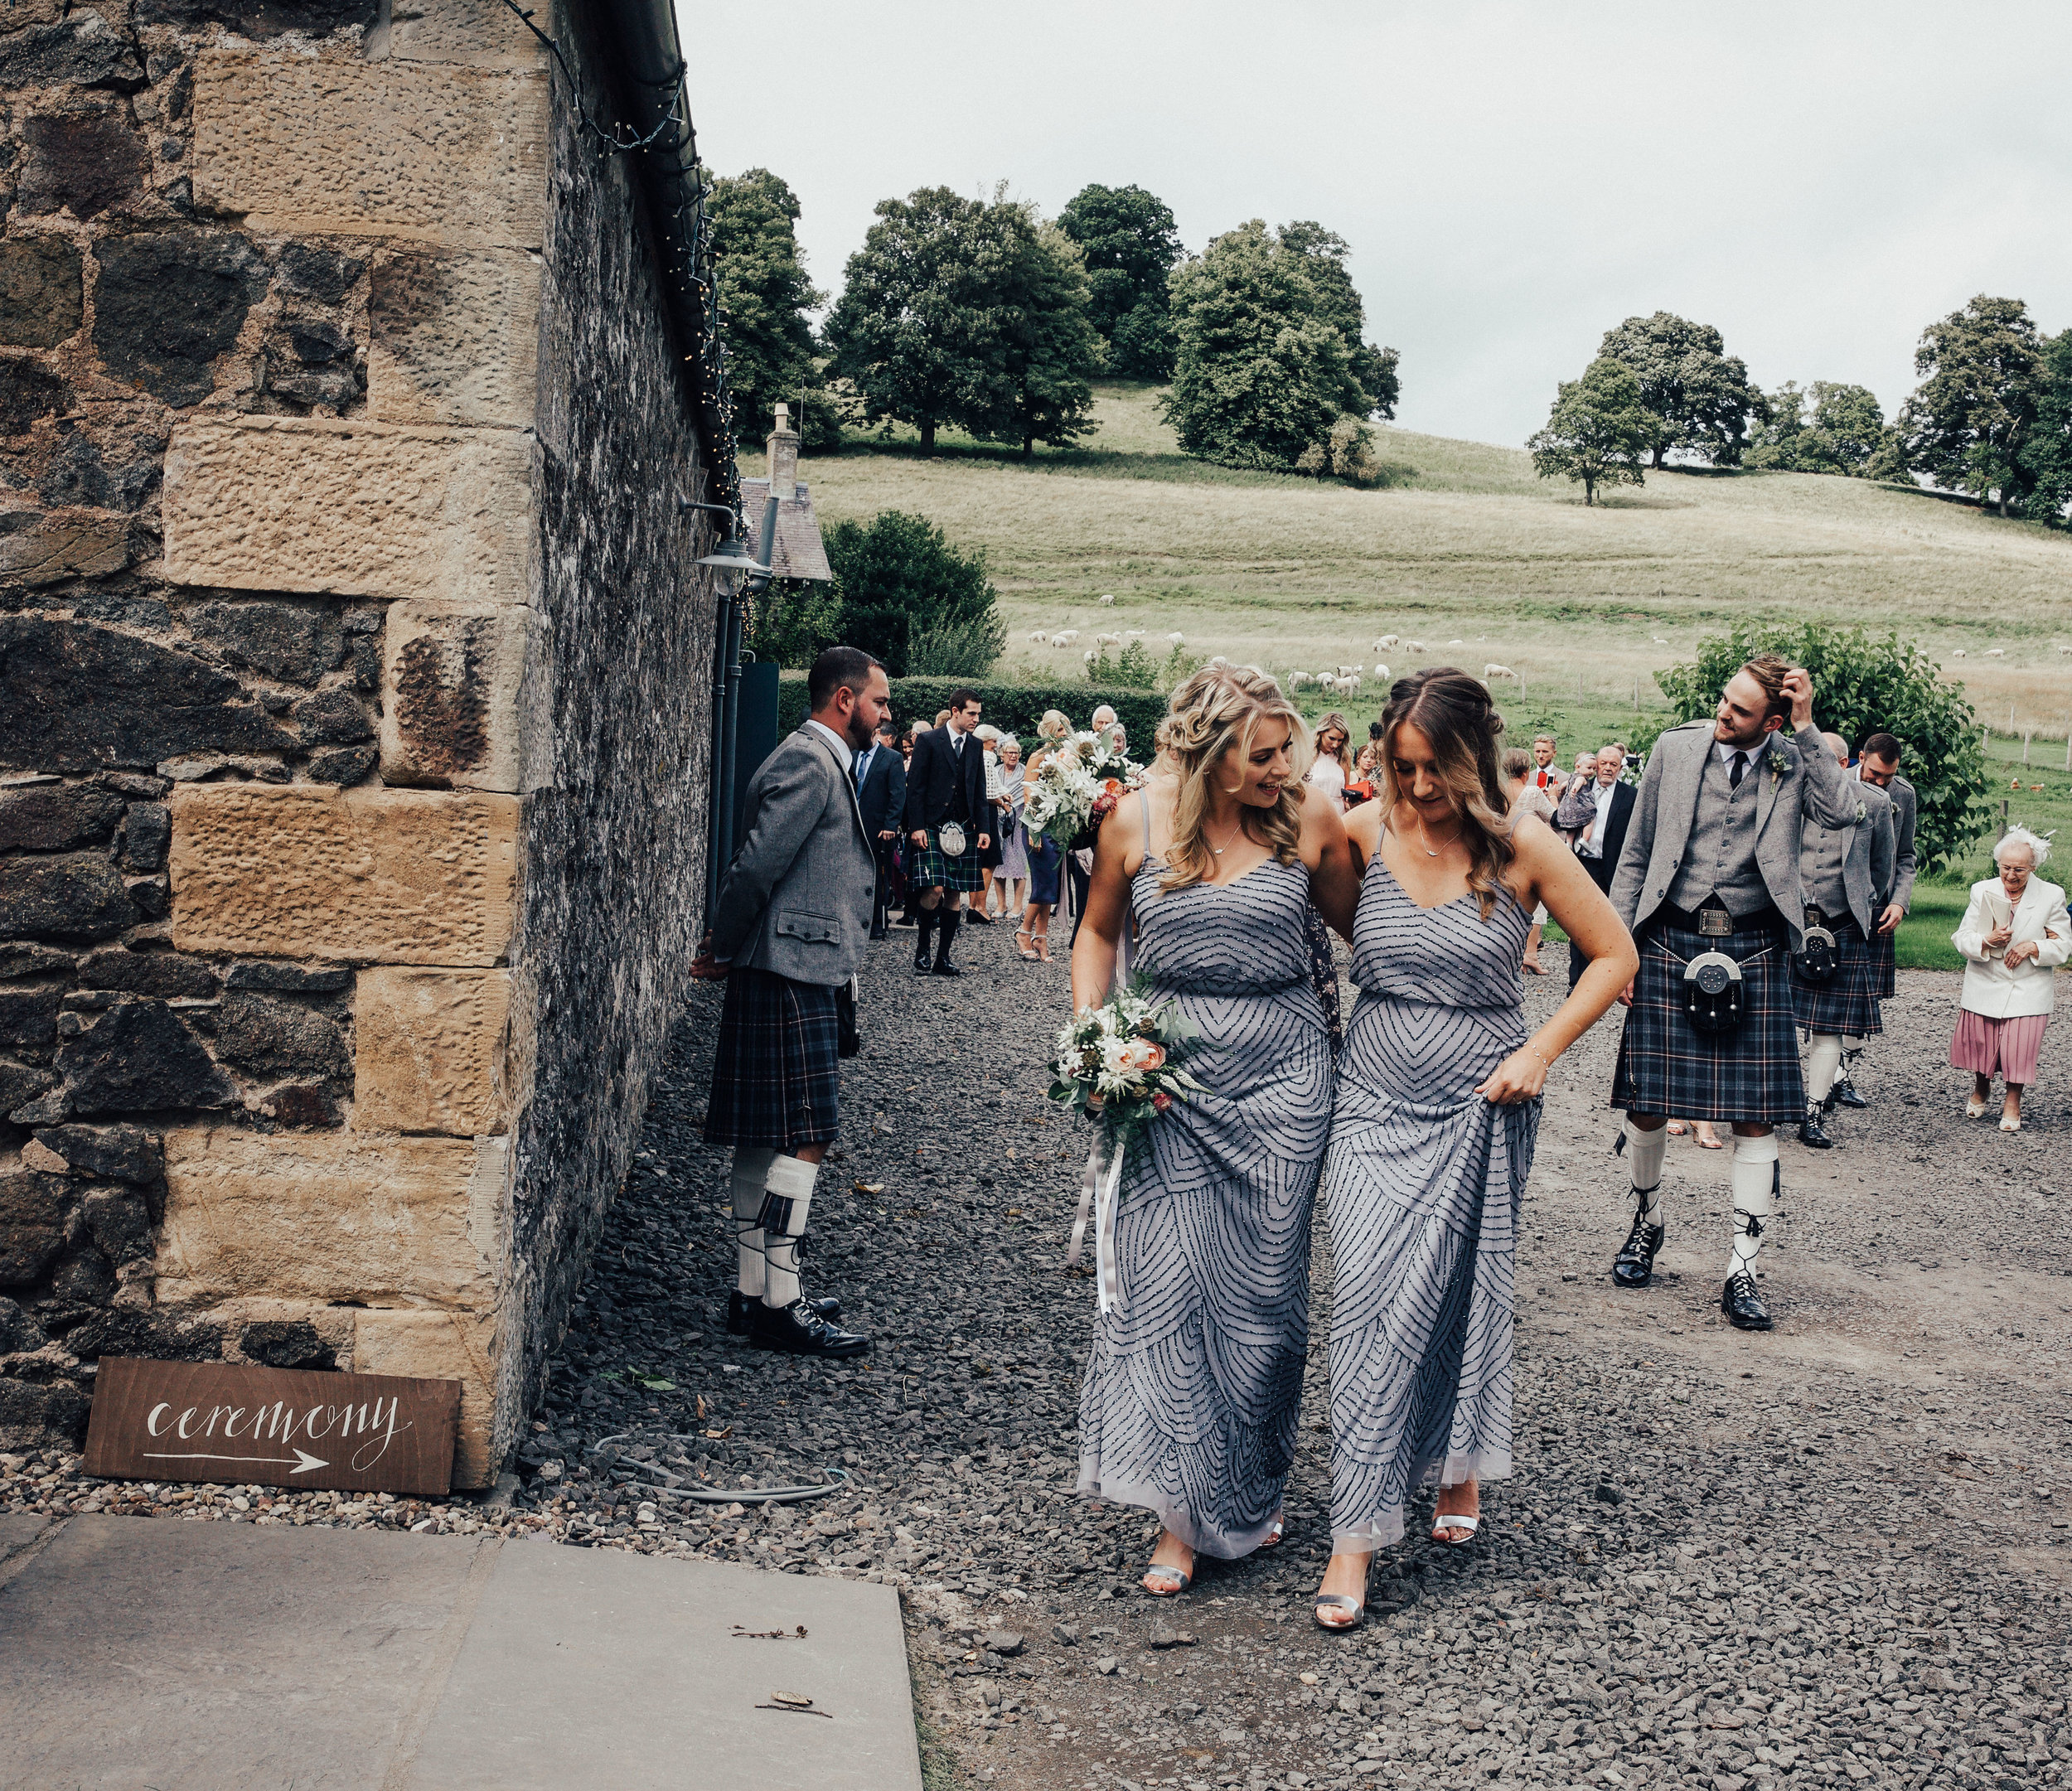 BYRE_AT_INCHYRA_WEDDING_PHOTOGRAPHER_PJ_PHILLIPS_PHOTOGRAPHY_KAYLEIGH_ANDREW_95.jpg